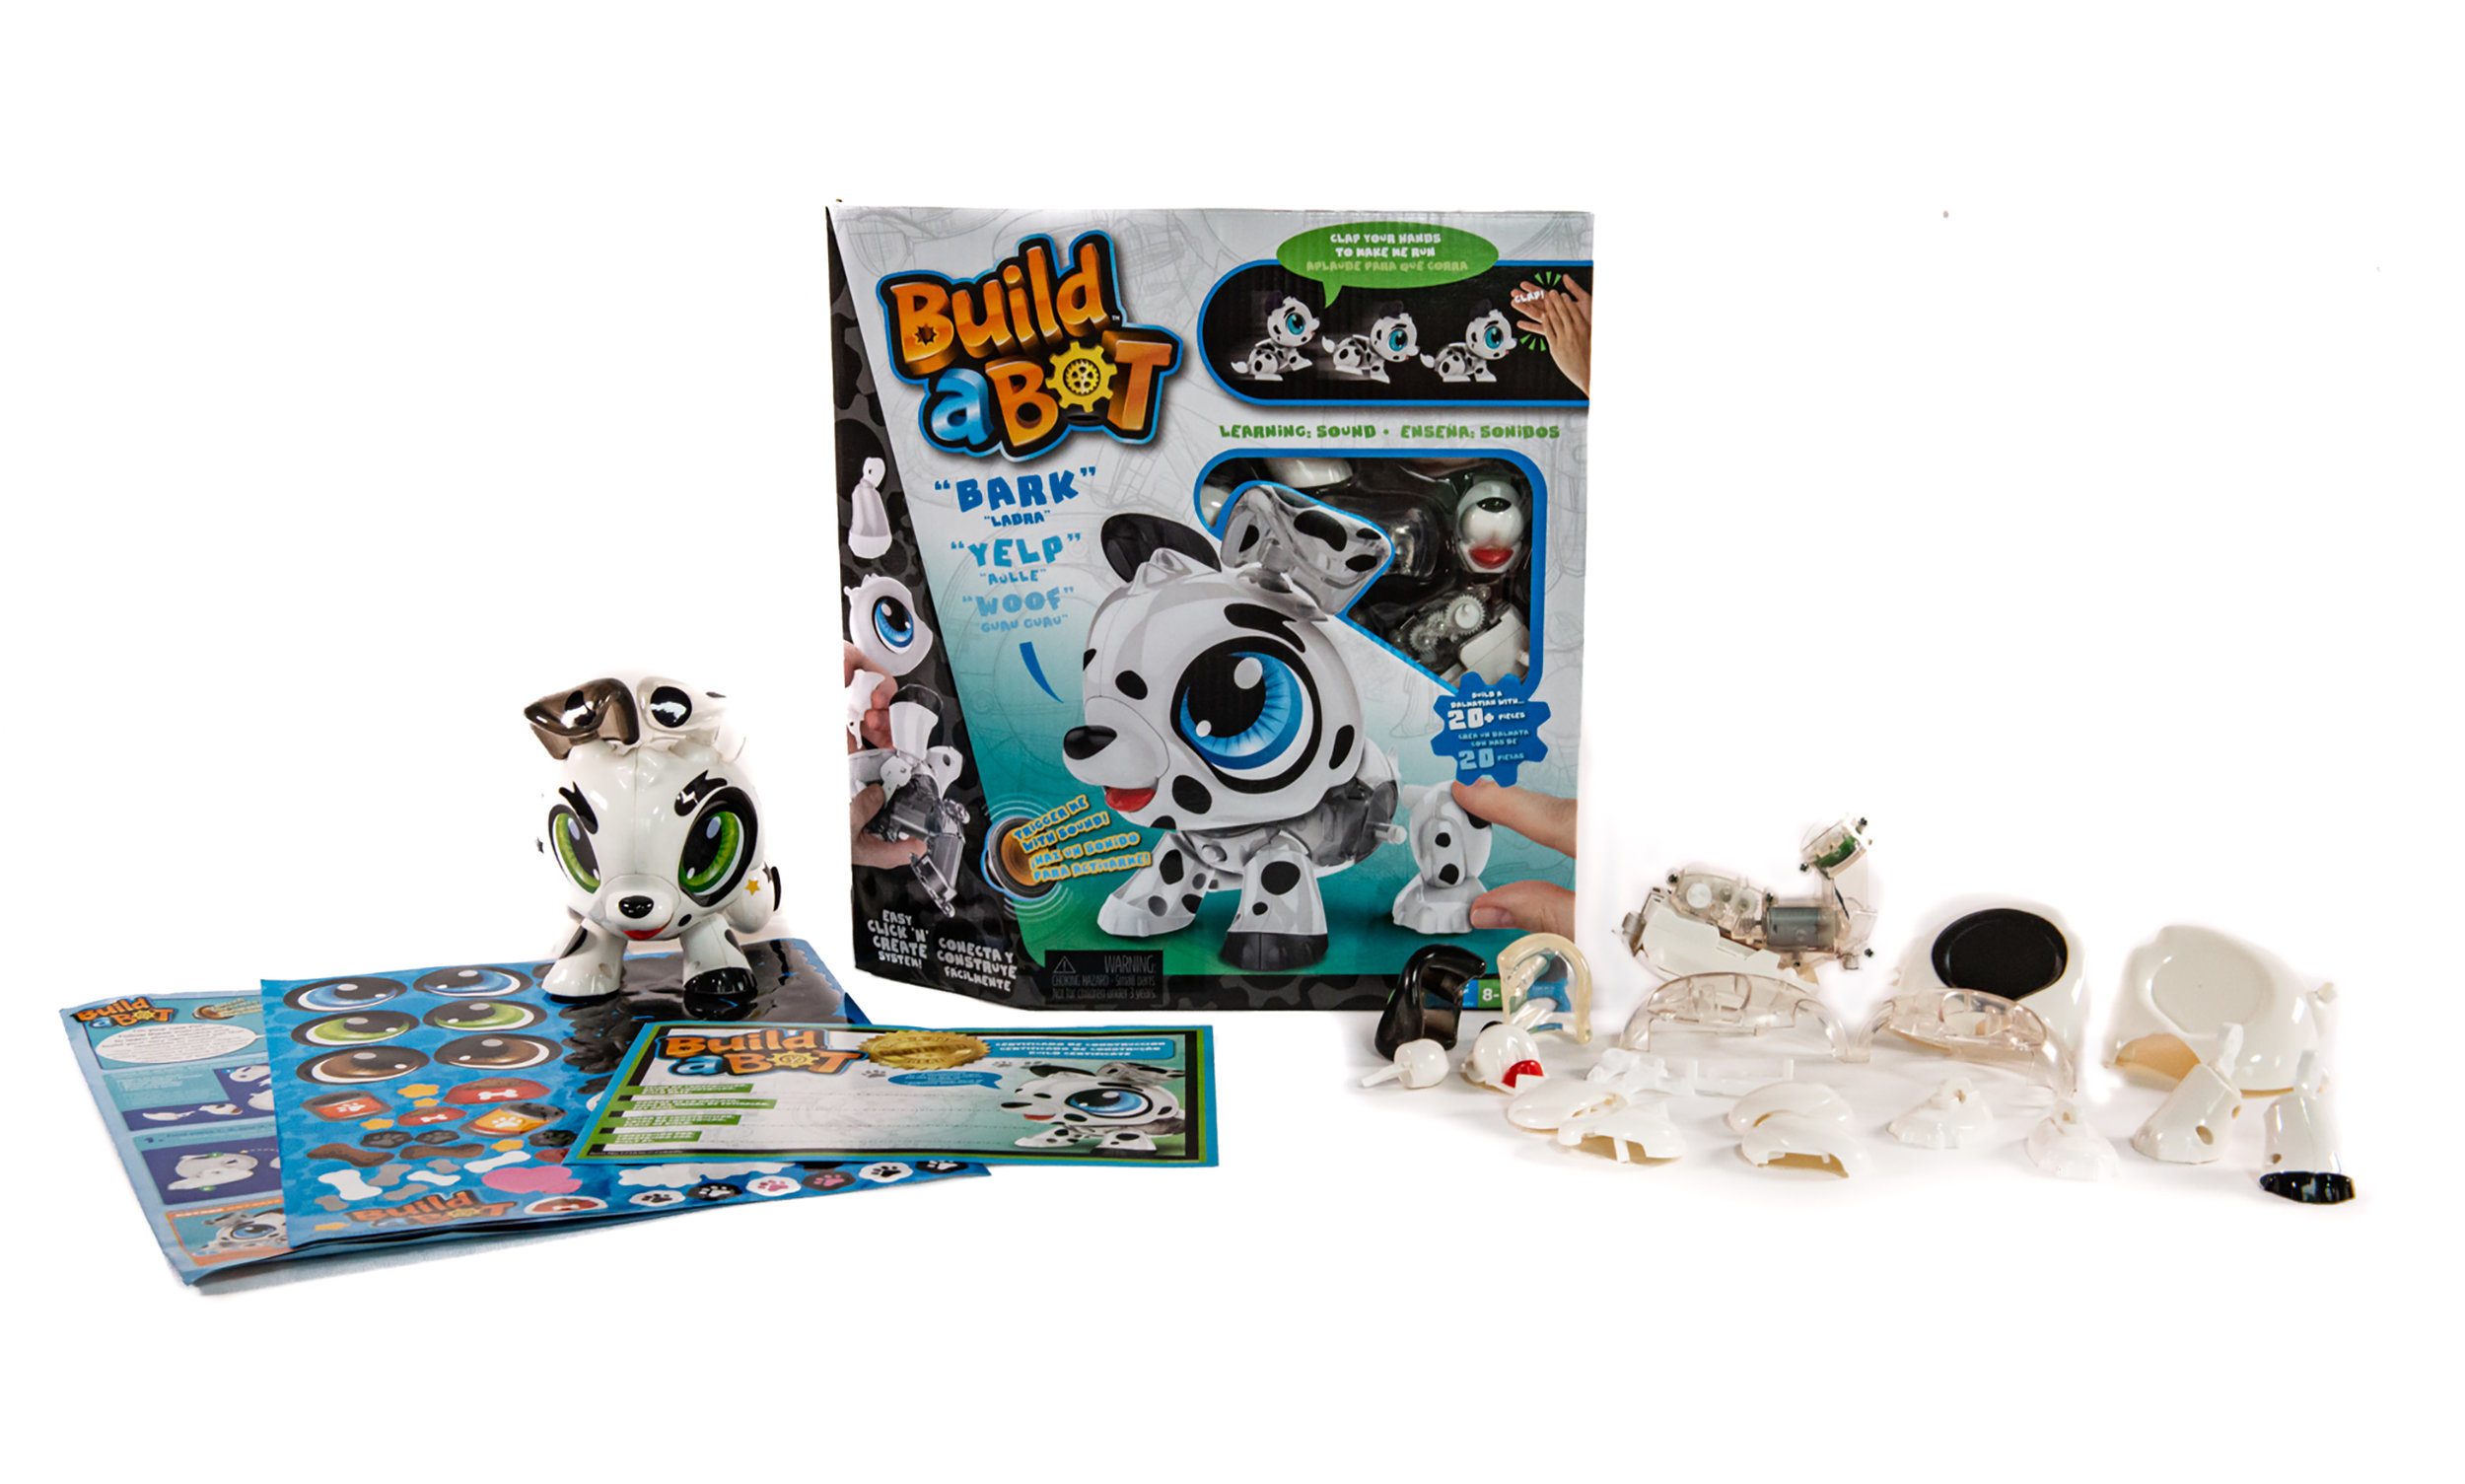 Image 3 Dalmatian - Package with Parts 3 - hi-res.jpg